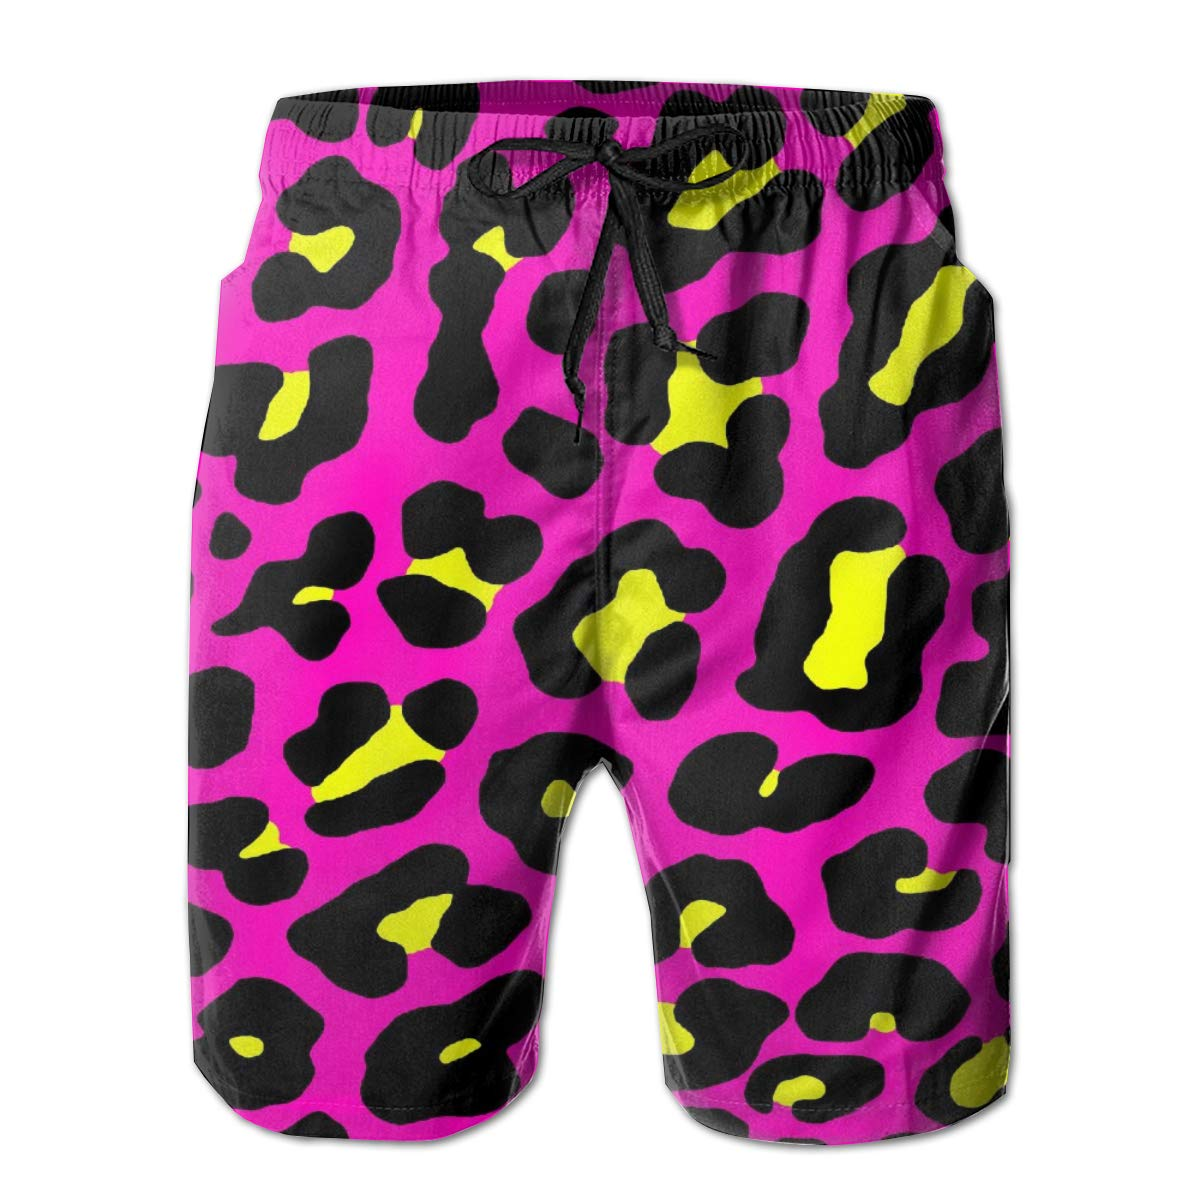 Leisue Cheetah Print Quick Dry Elastic Lace Boardshorts Beach Shorts Pants Swim Trunks Male Swimsuit with Pockets